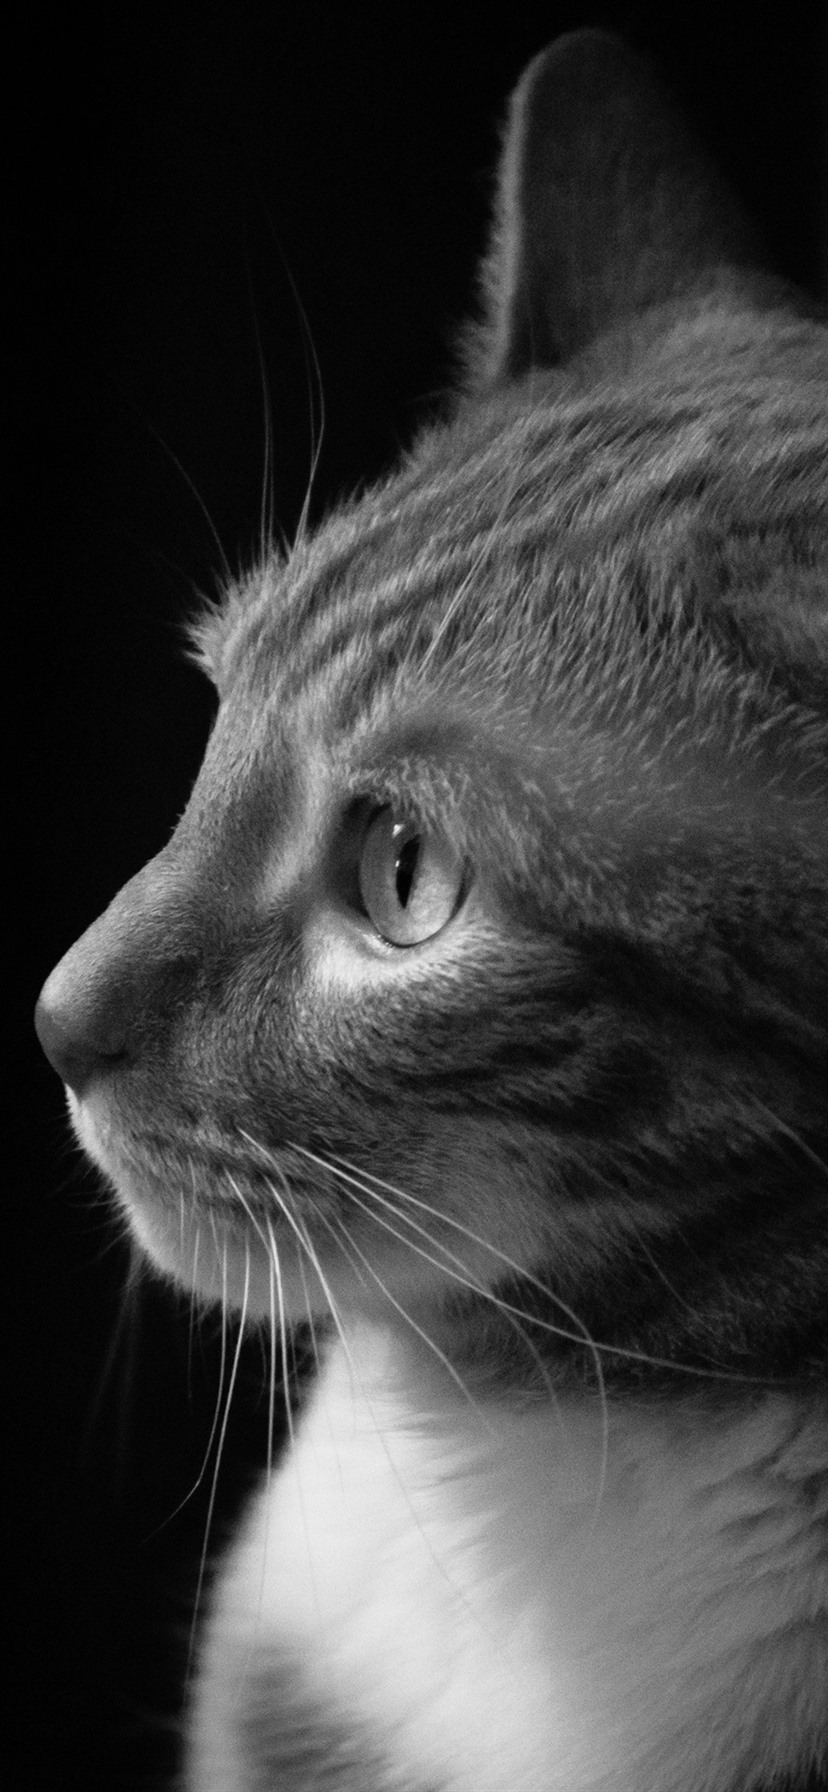 Cat Side View Black White Picture 1080x1920 Iphone 8 7 6 6s Plus Wallpaper Background Picture Image